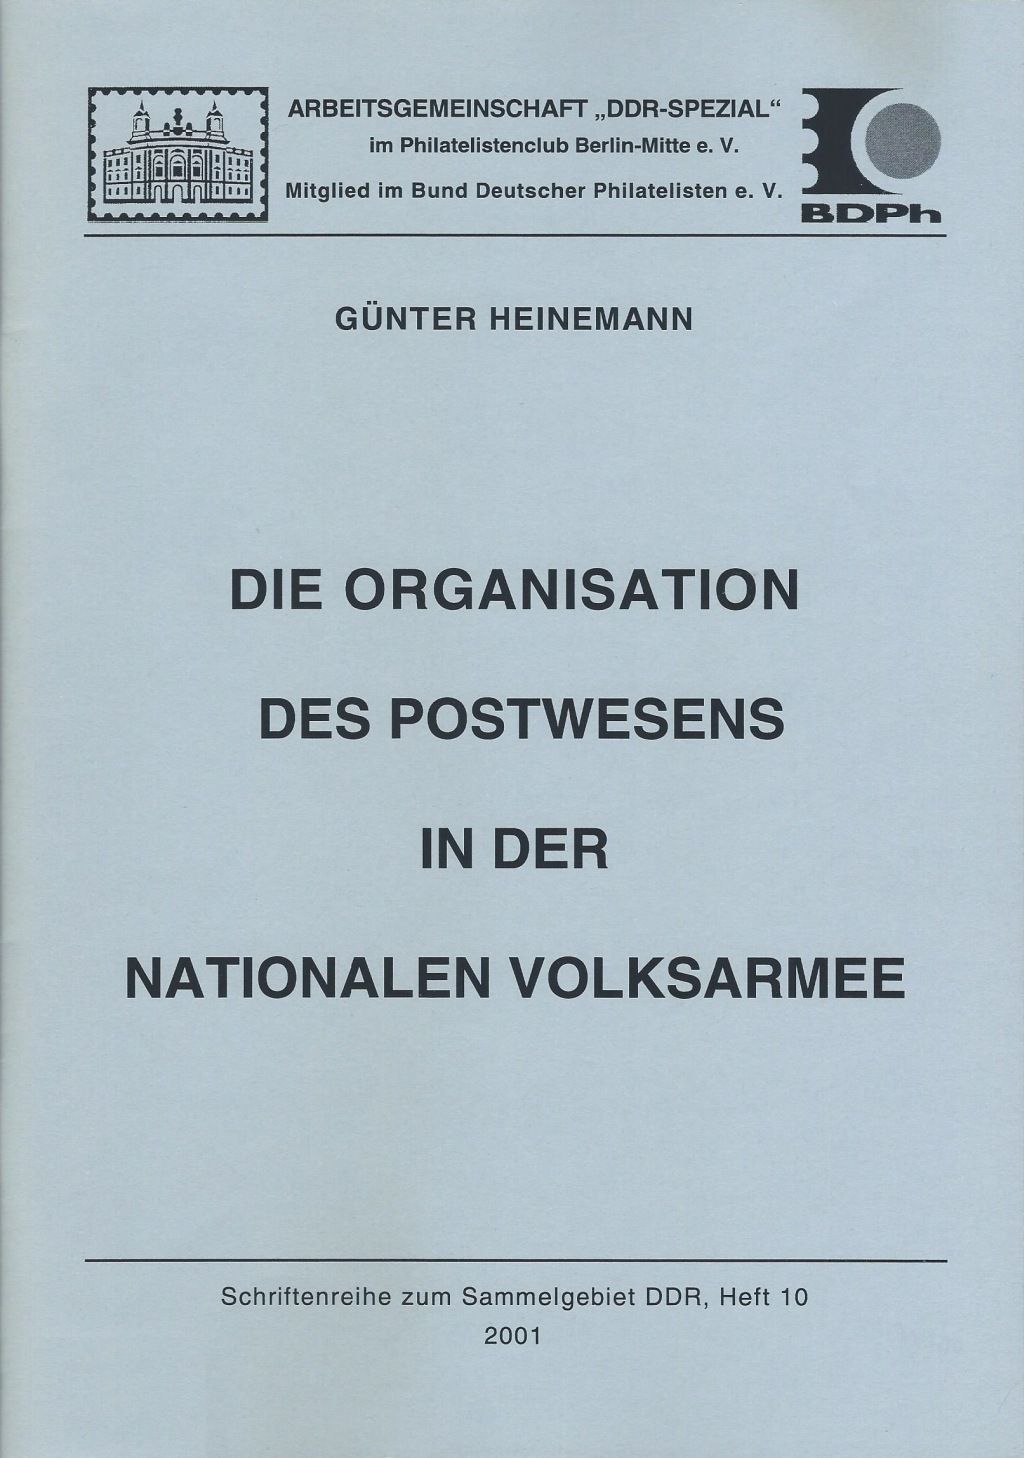 DDR Philatelie Literatur Postwesen Nationale Volksarmee NVA